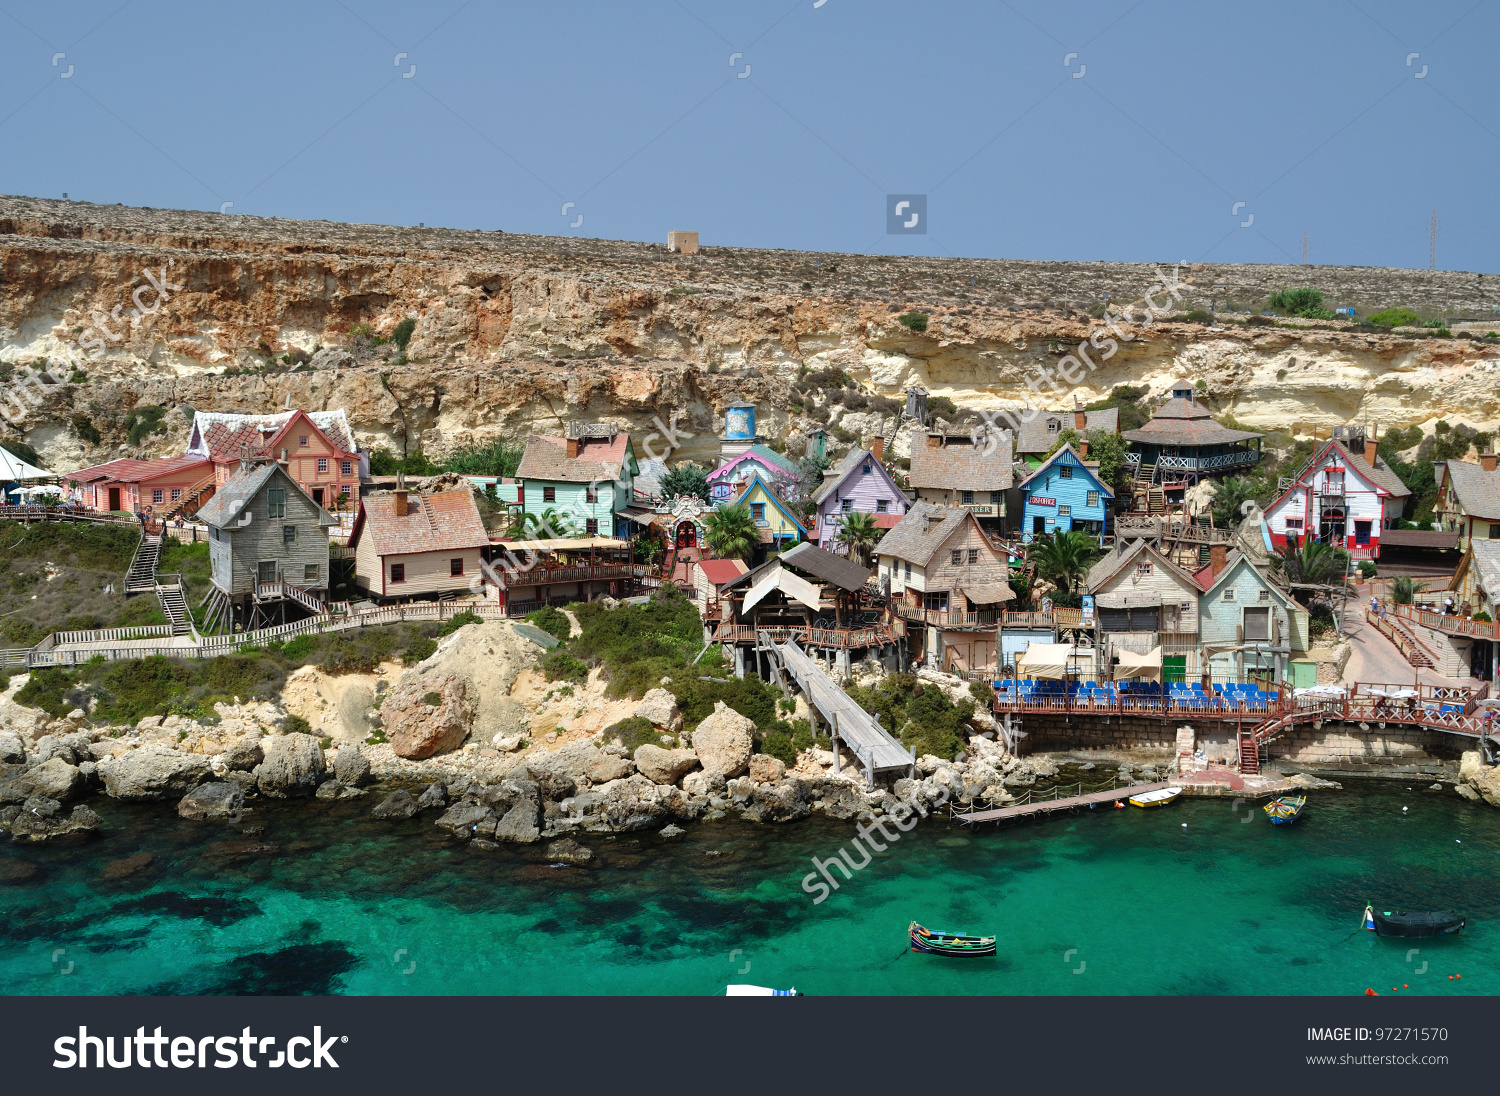 Popeye'S Village, Malta Stock Photo 97271570 : Shutterstock.